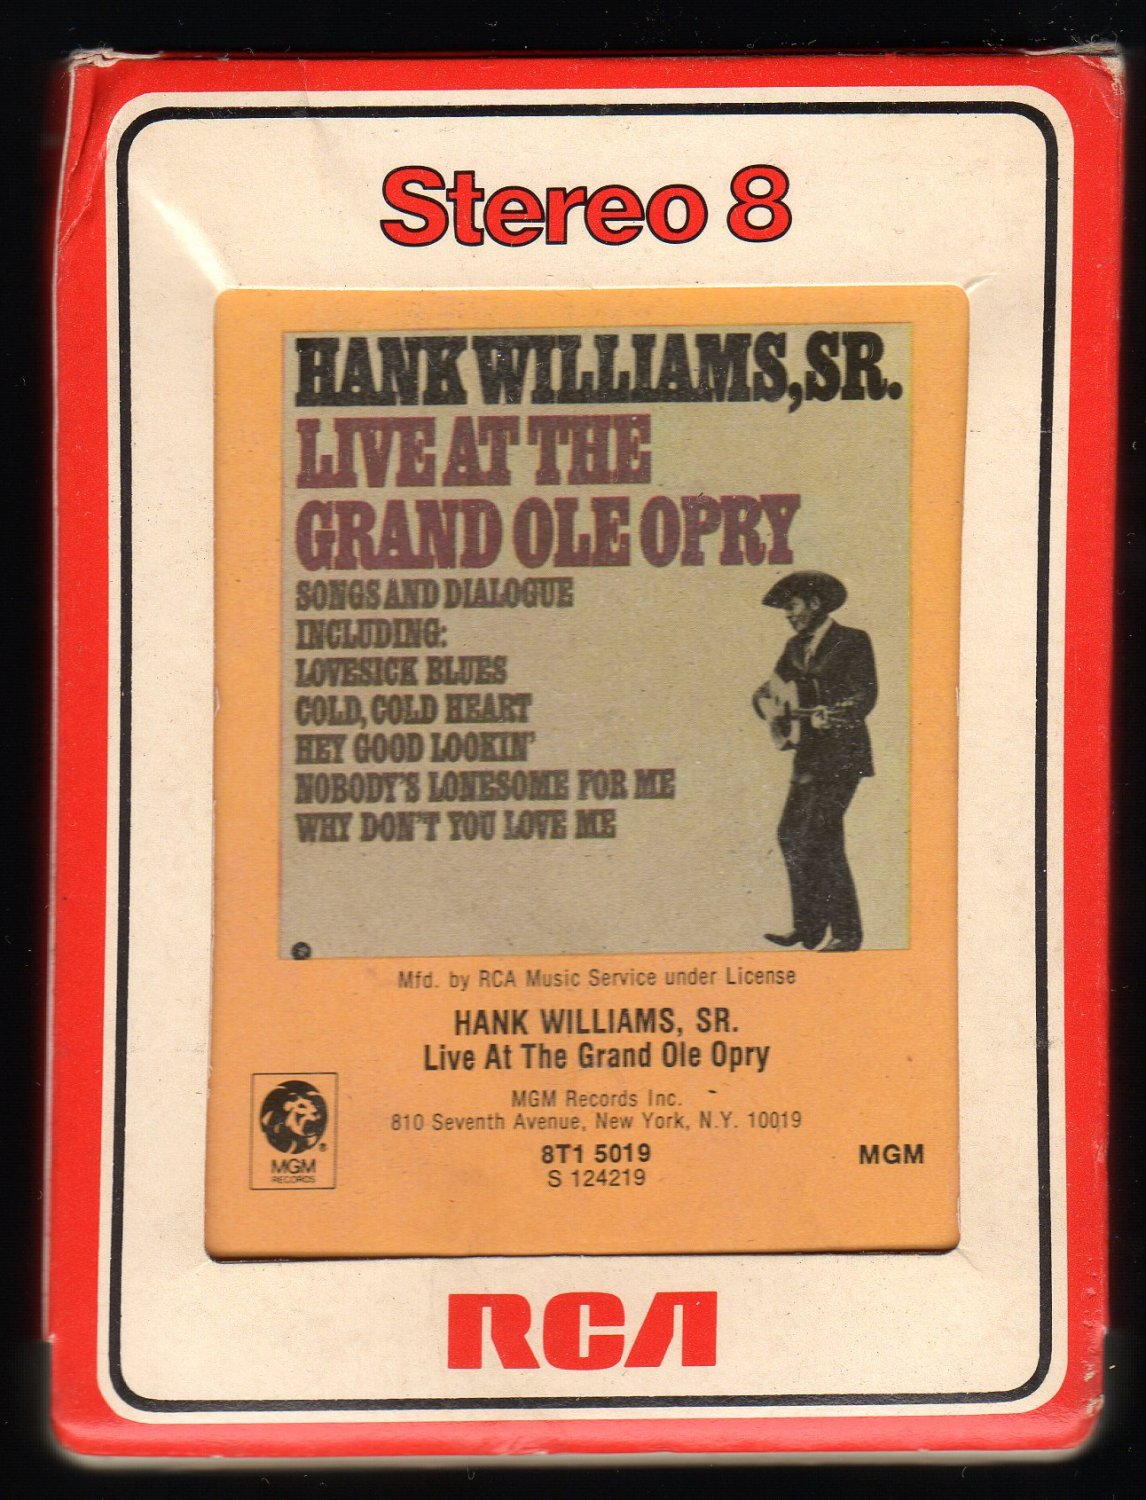 Hank Williams Sr. - Live at the Grand Ole Opry 1976 RCA A29B 8-TRACK TAPE